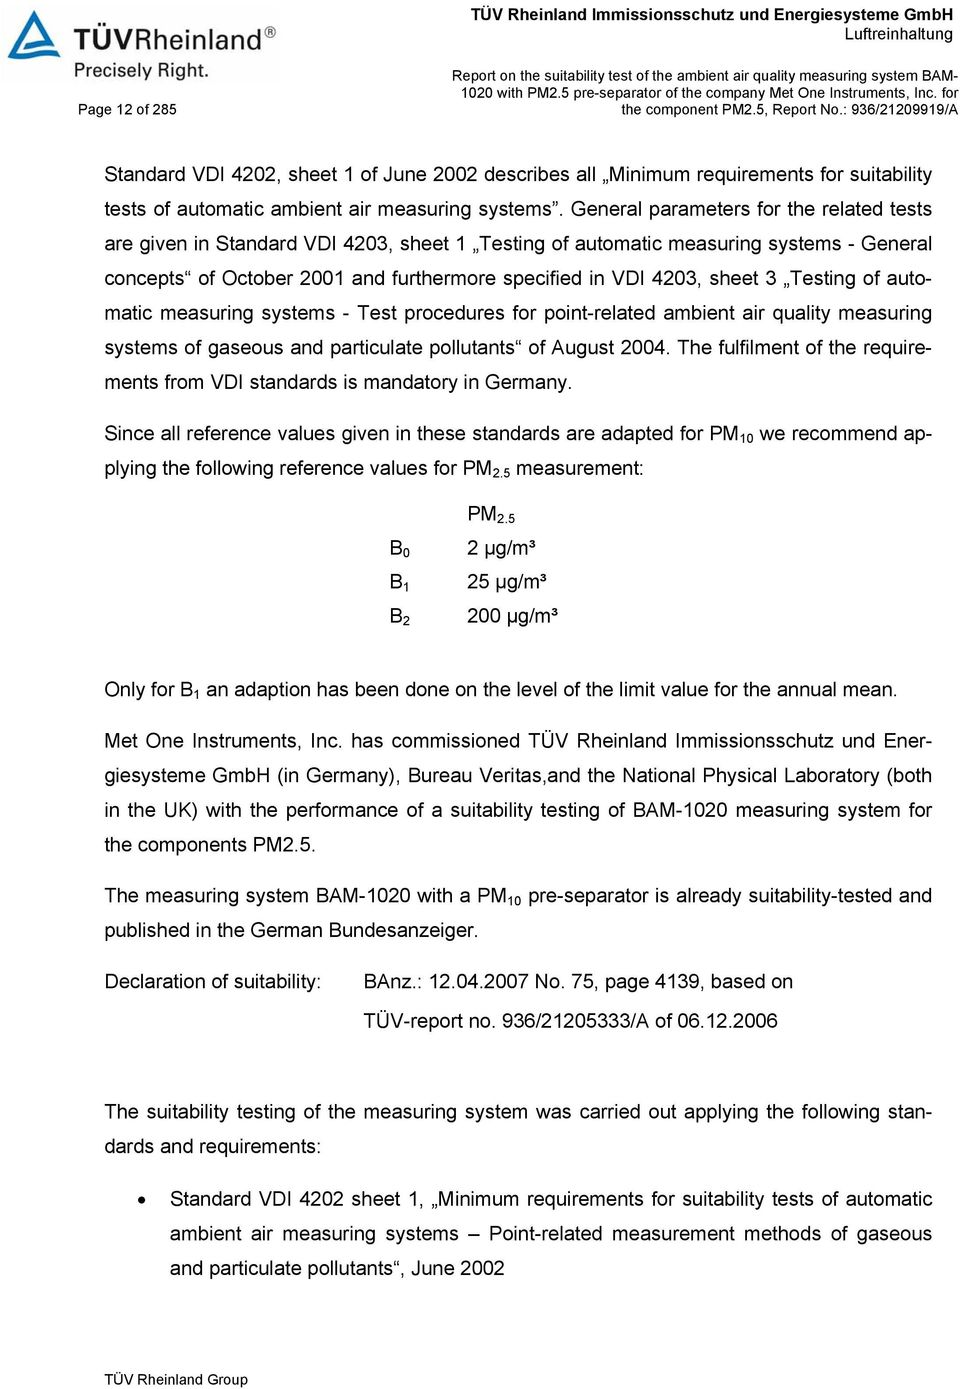 General parameters for the related tests are given in Standard VDI 4203, sheet 1 Testing of automatic measuring systems - General concepts of October 2001 and furthermore specified in VDI 4203, sheet